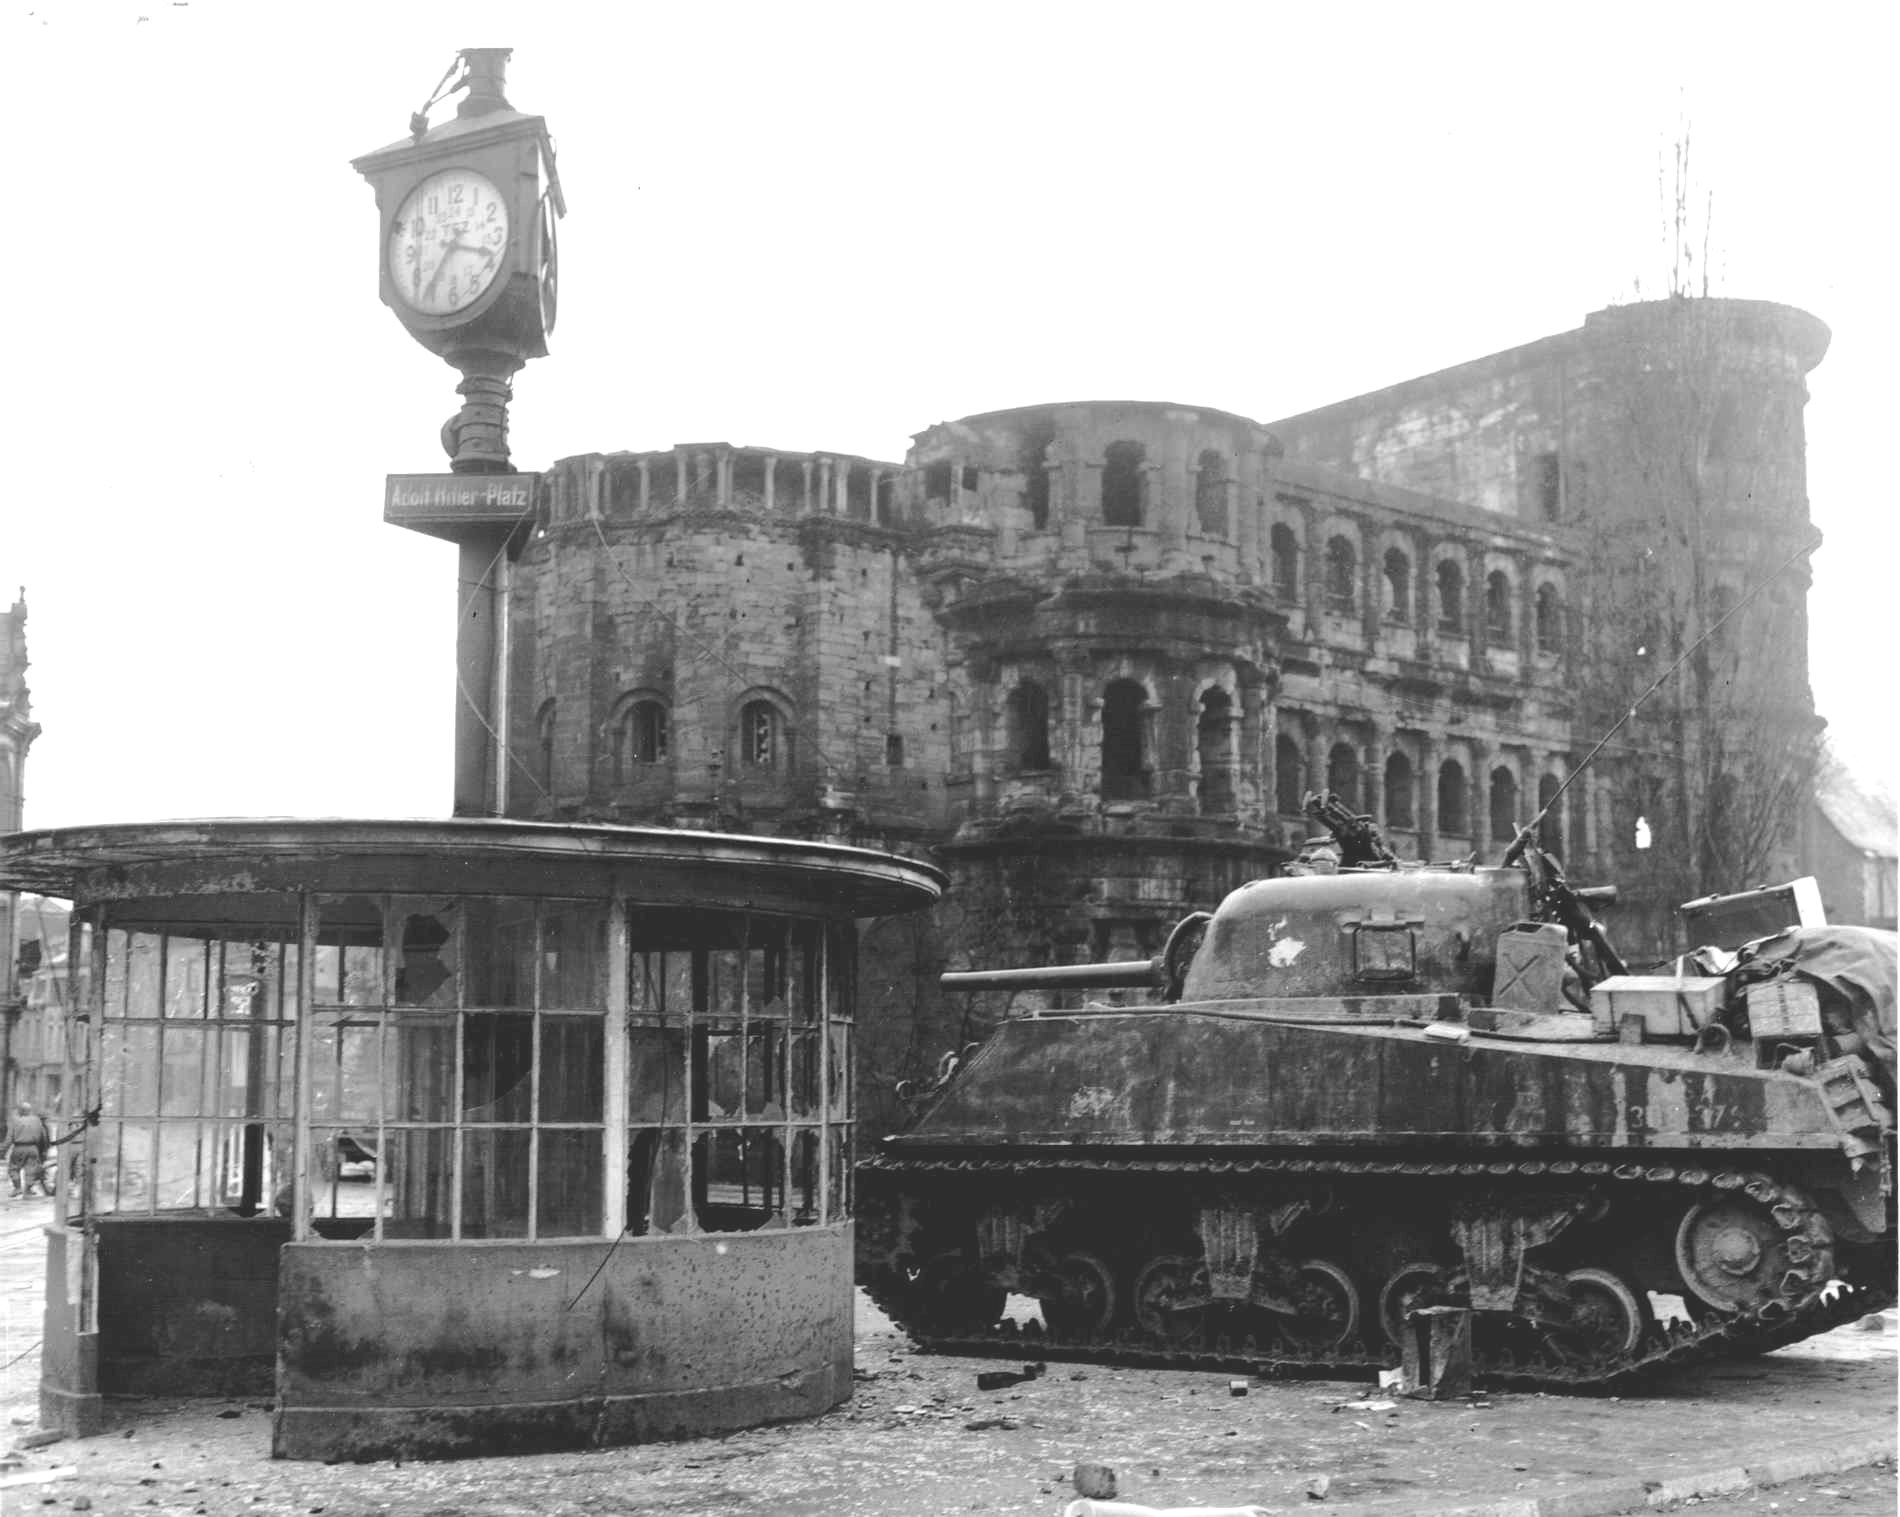 Capture of Trier, Germany, March 2 1945